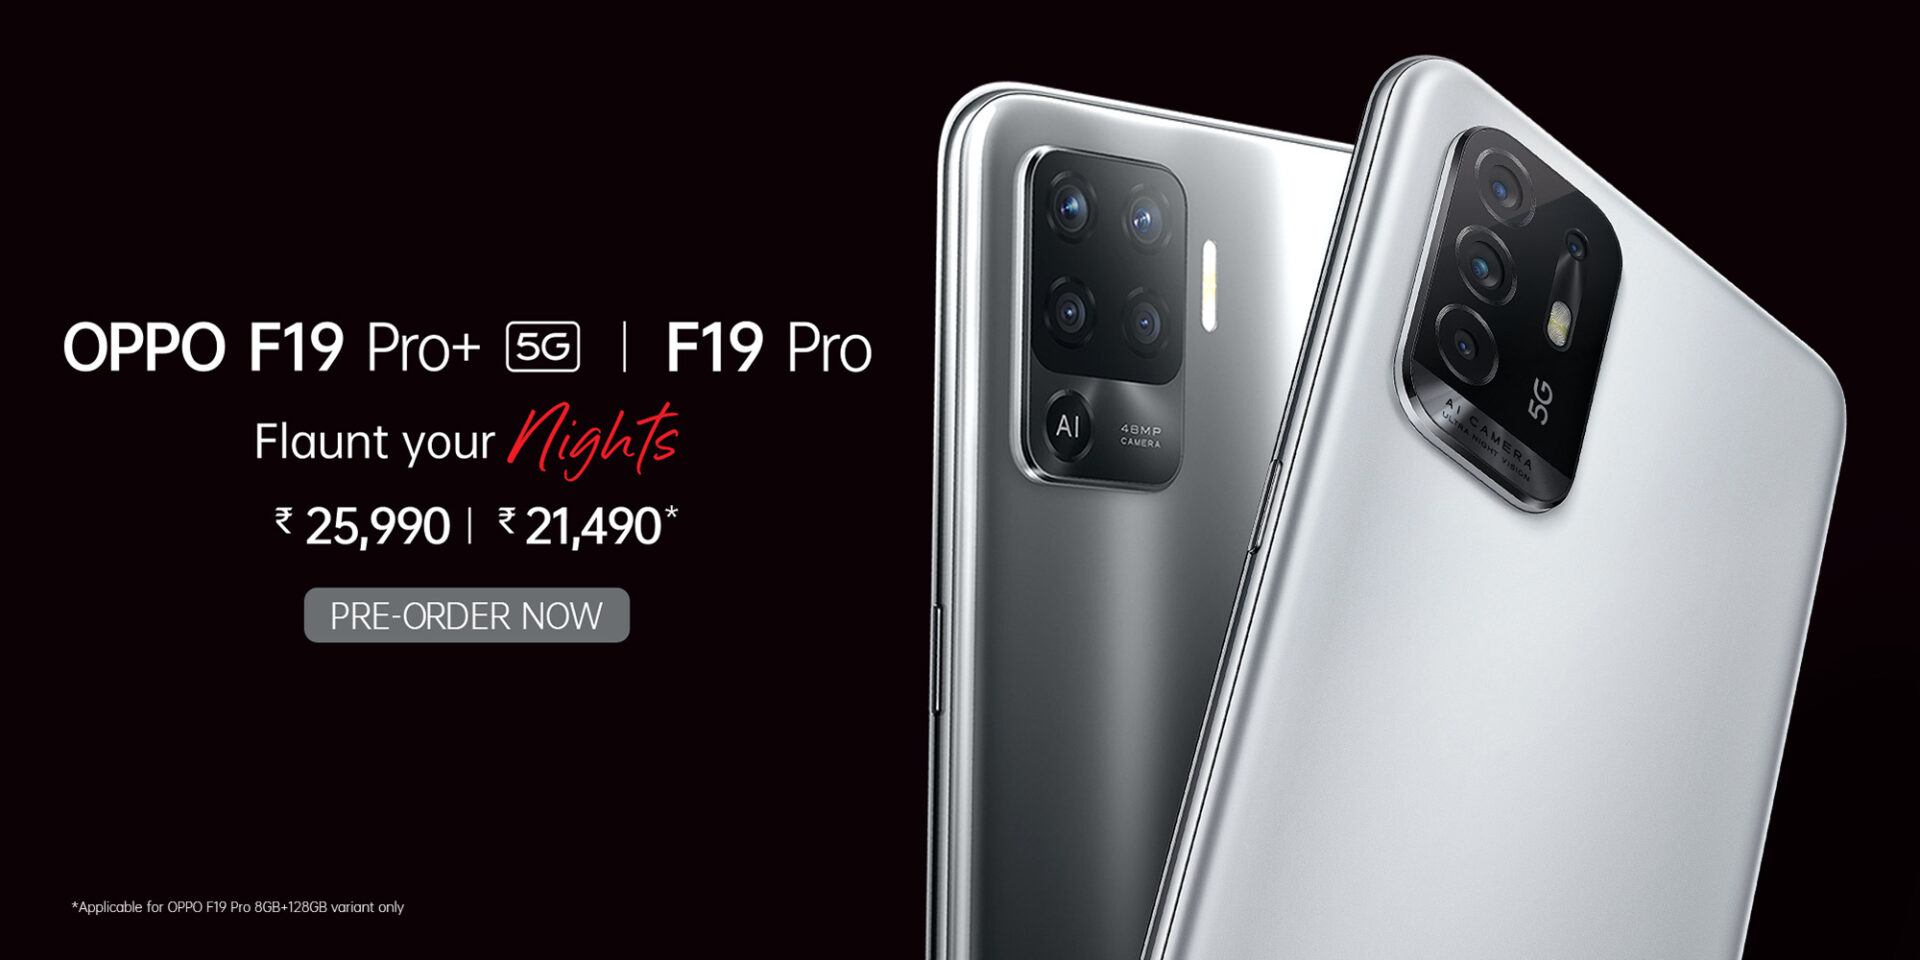 Oppo F19 Pro + and F19 Pro